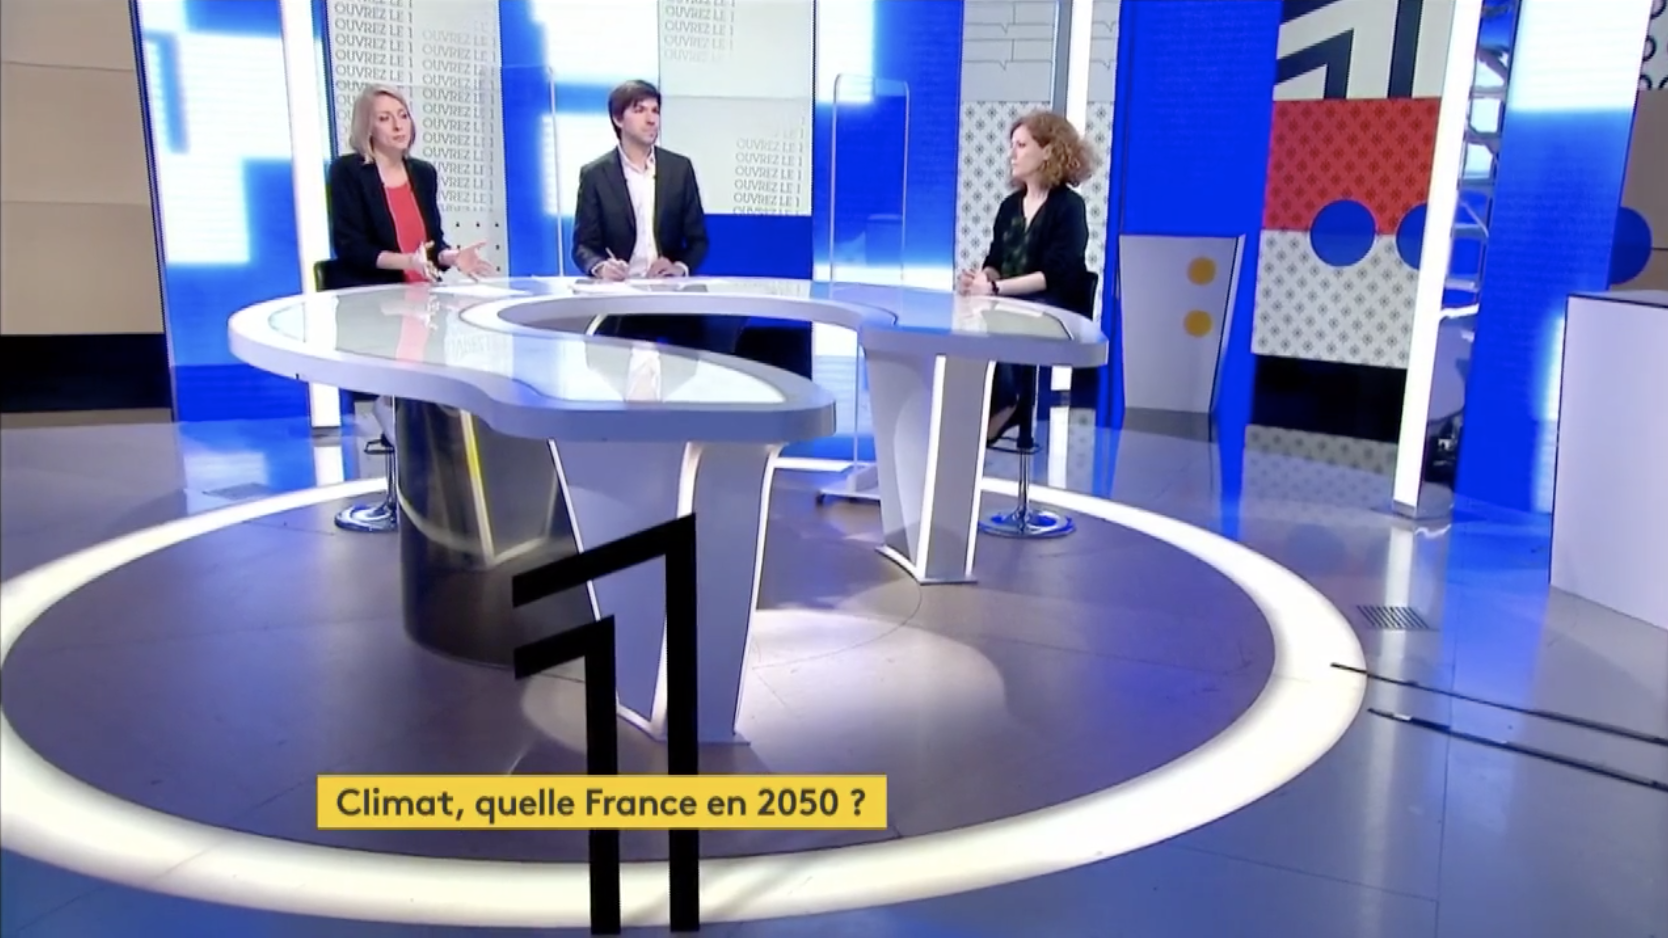 REPLAY |340 Climat : quelle France en 2050 ?